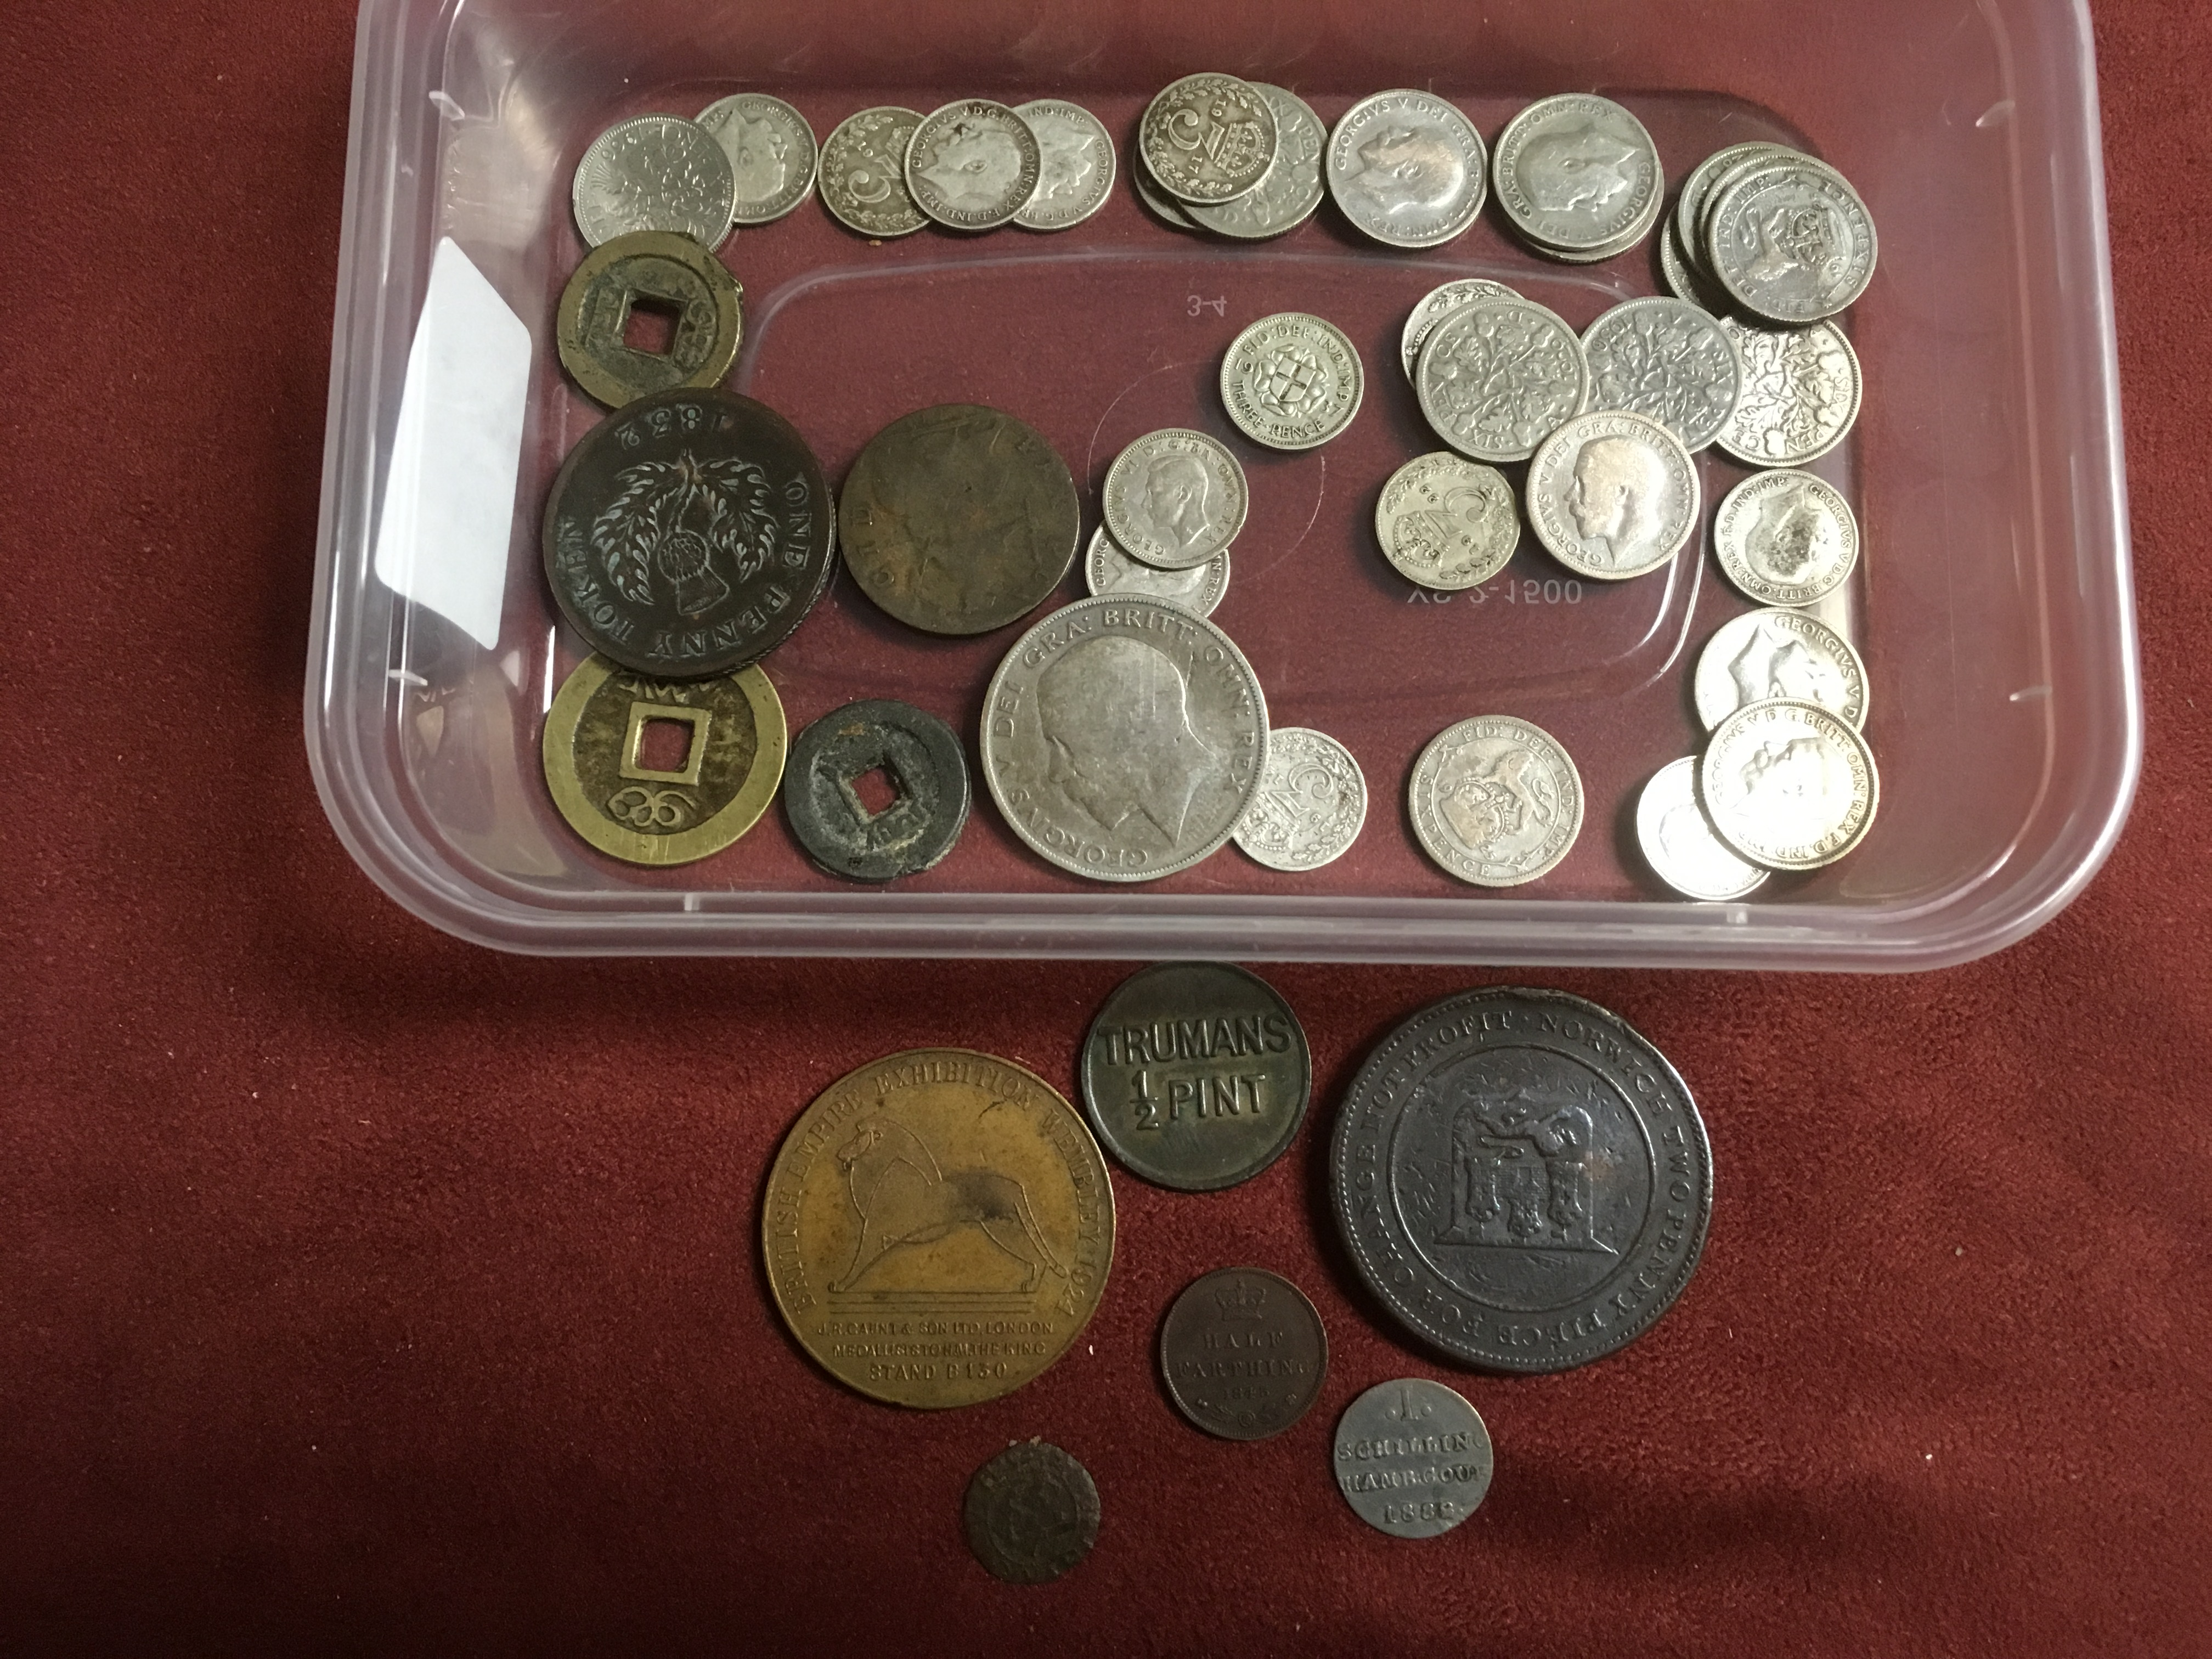 TUB WITH MIXED COINS, GB SILVER 6d AND 3